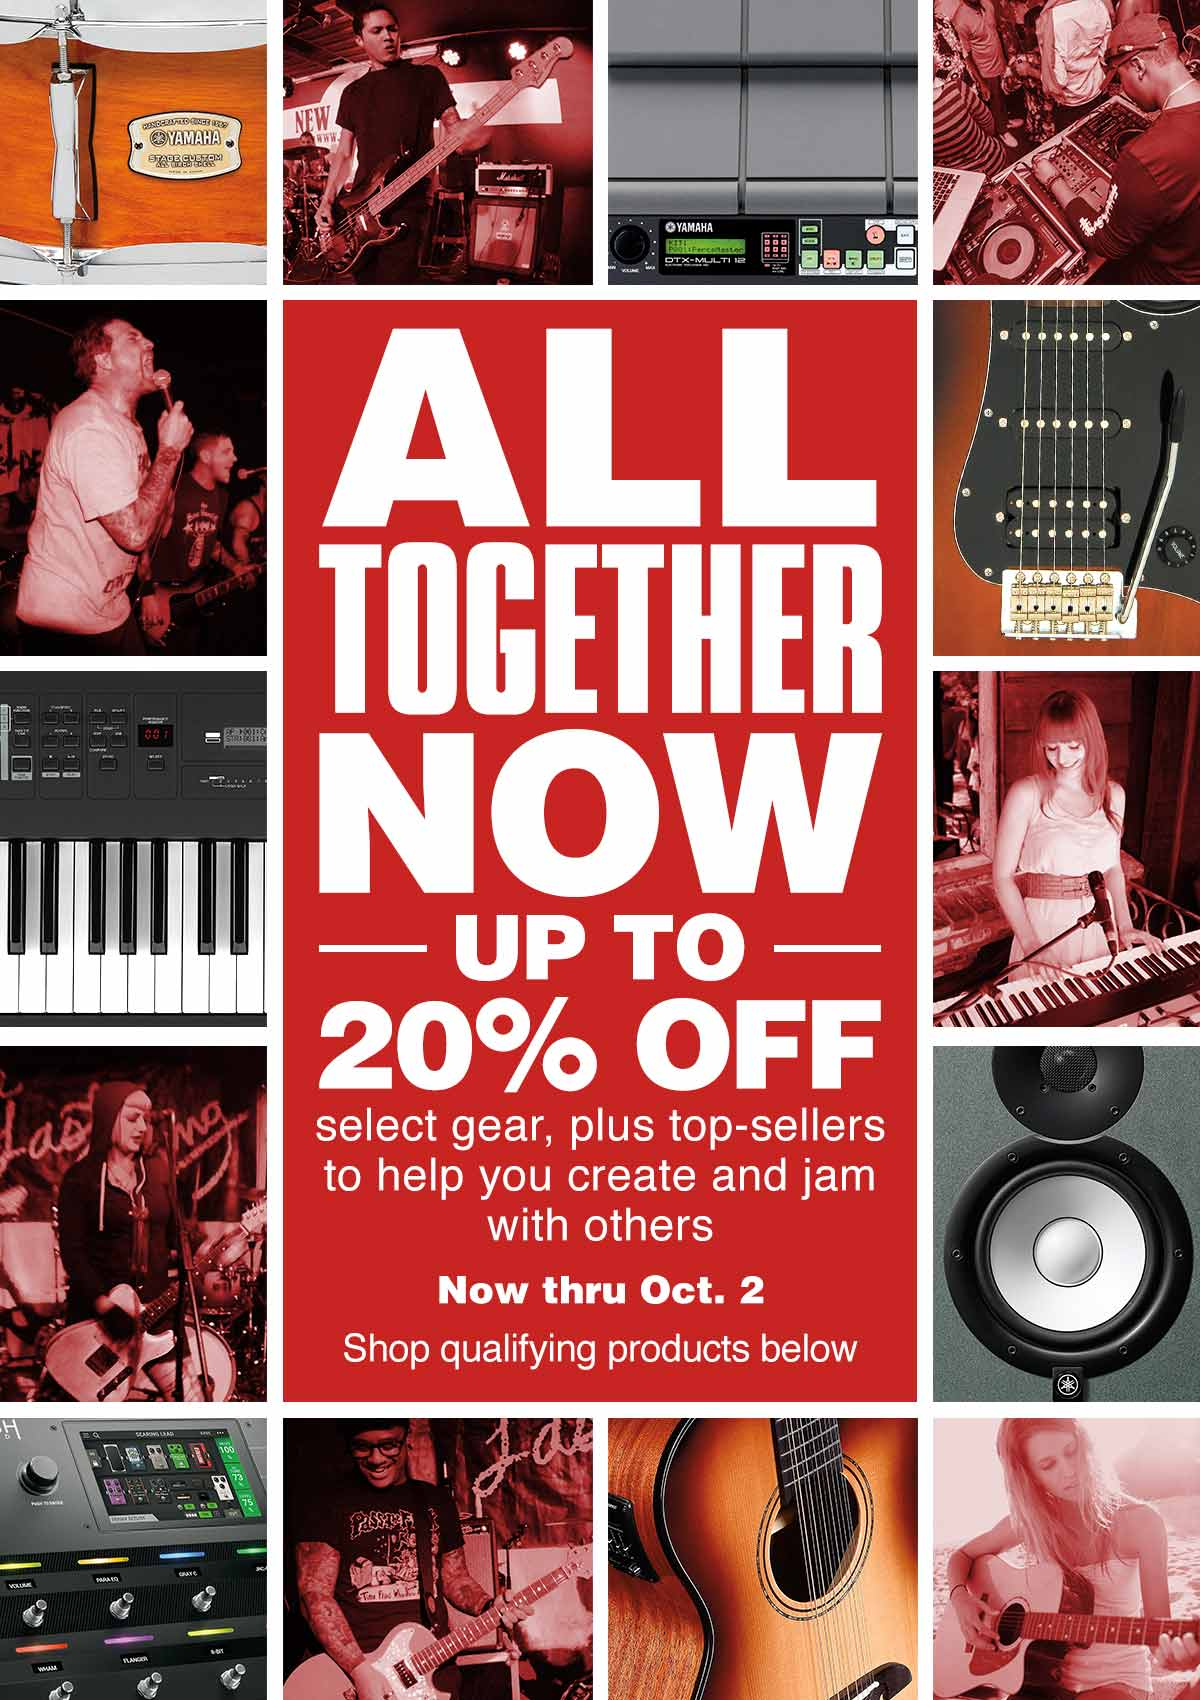 All Together Now up to 20 percent off select gear, plus top-sellers to help you create and jam with others now thru Oct 2. shop qualifying products below